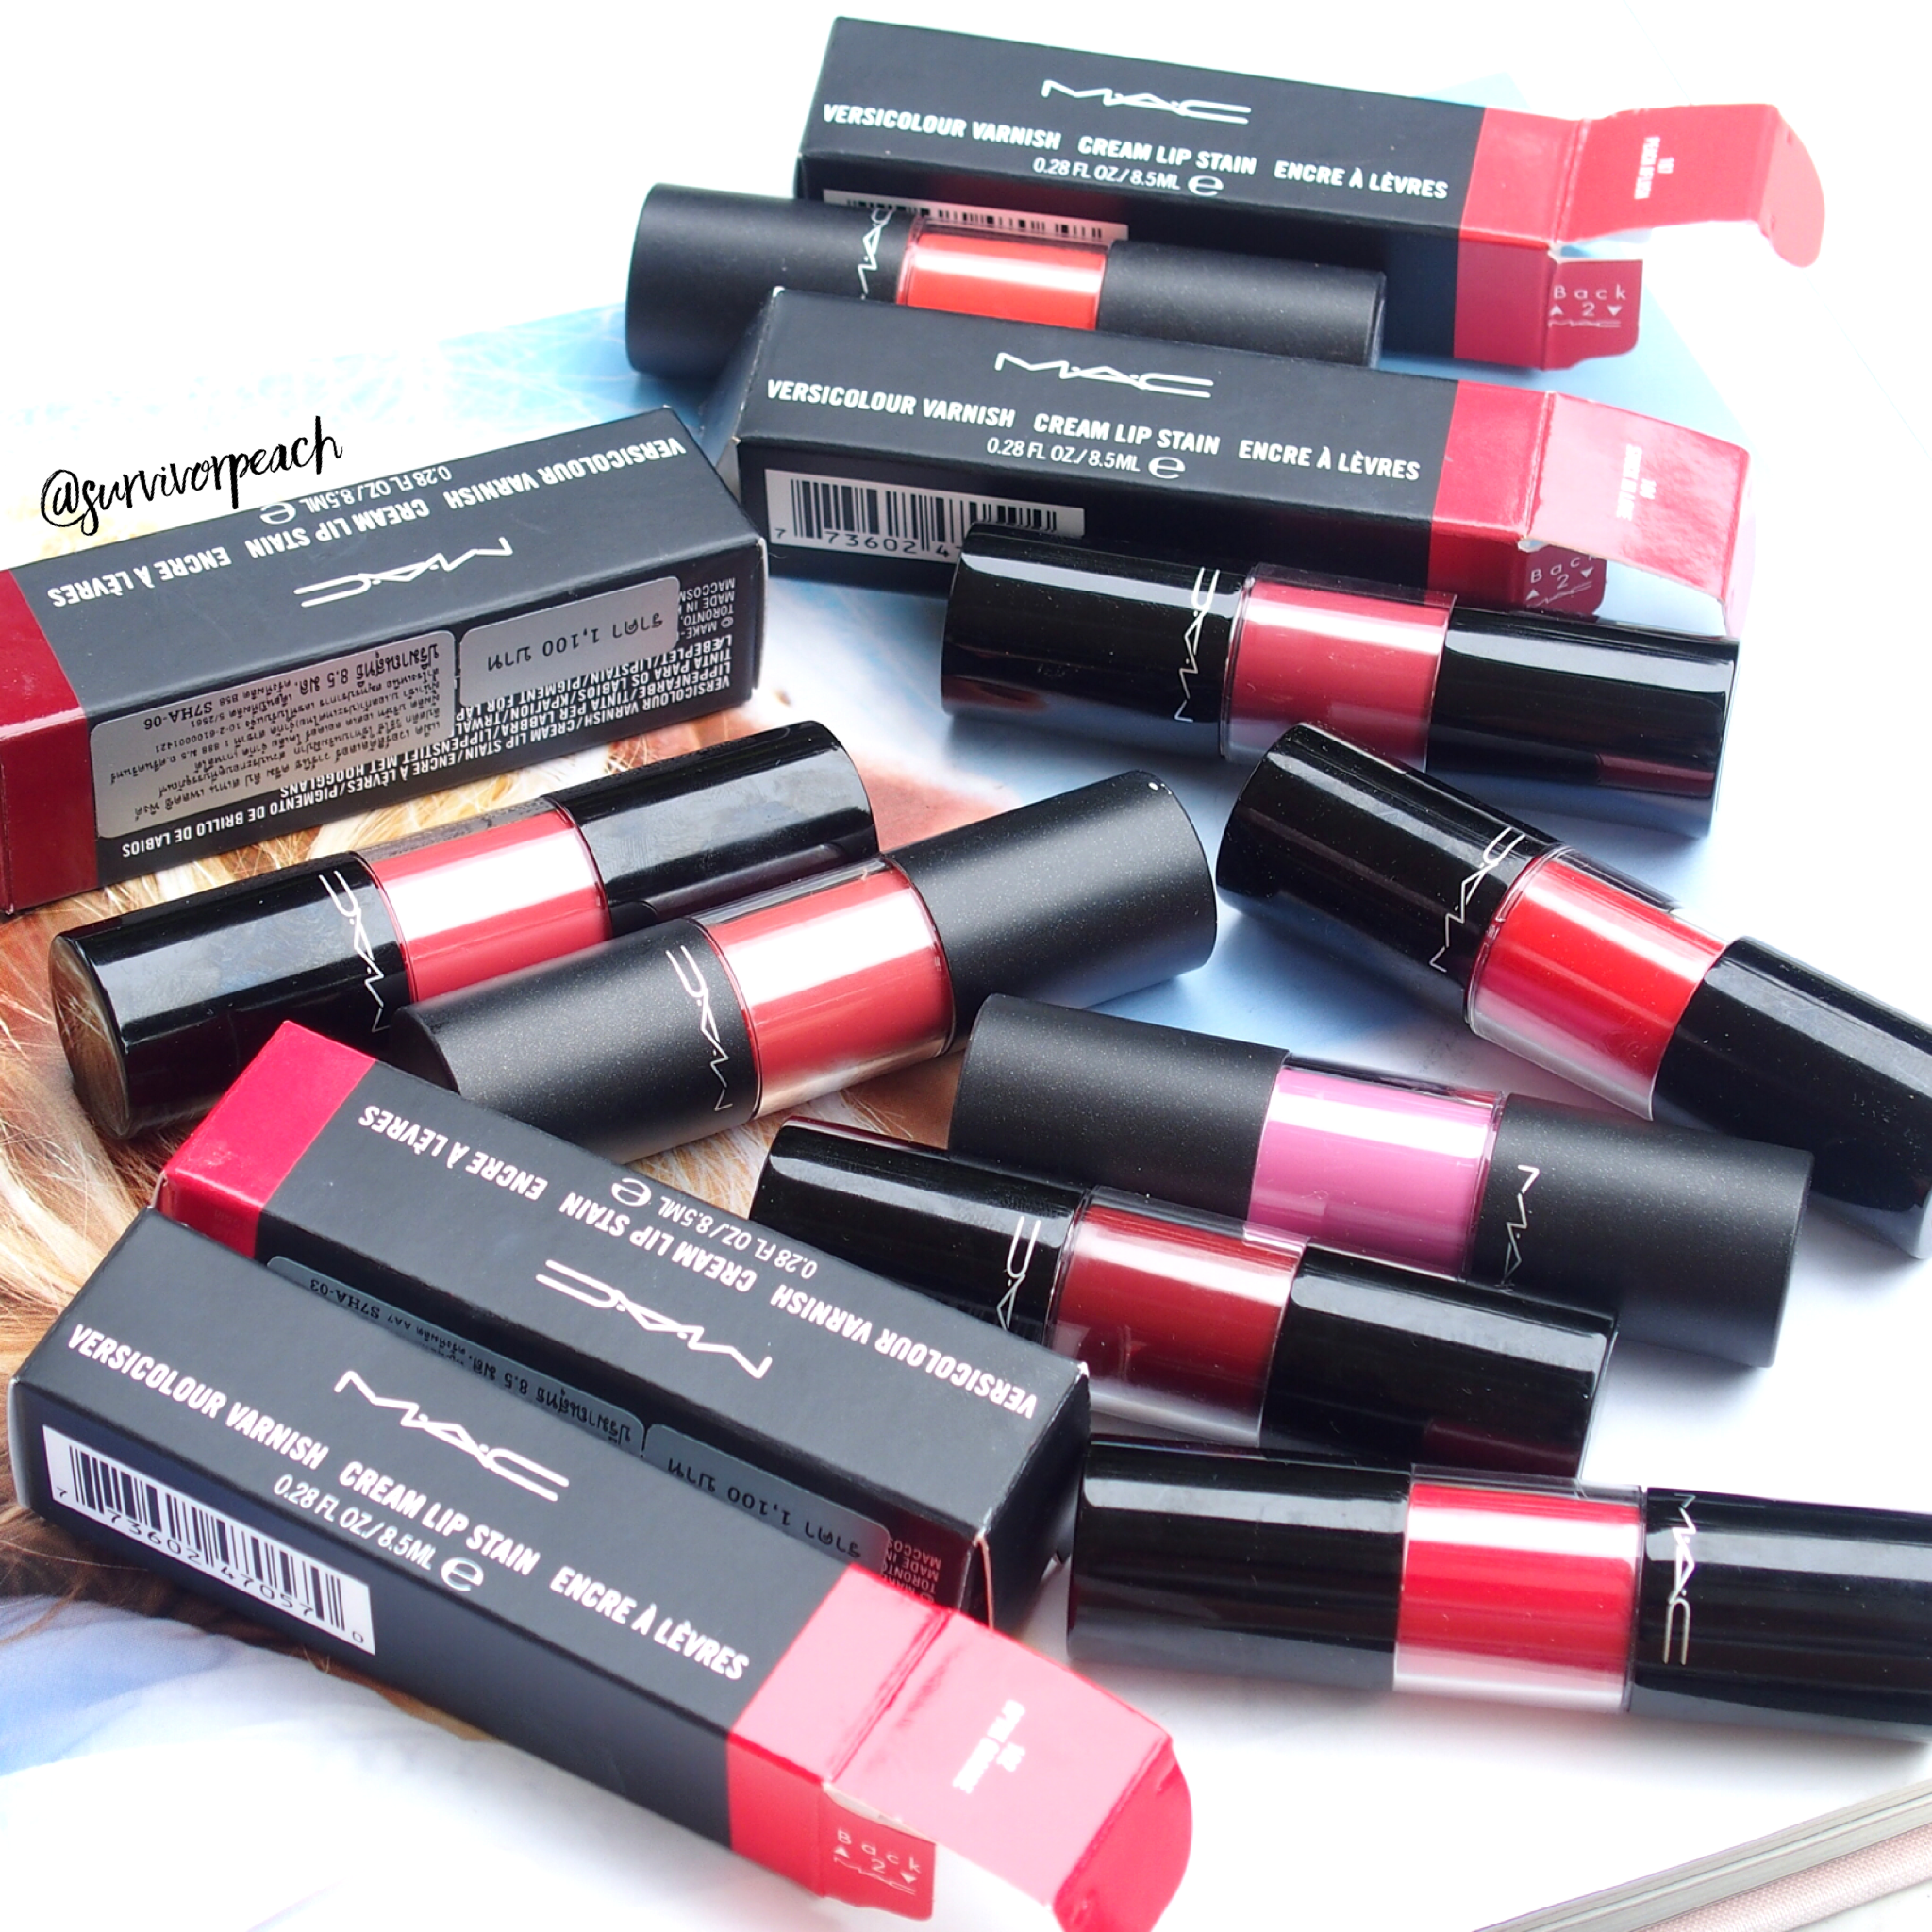 Mac Versicolor Varnish Cream Lip Stain